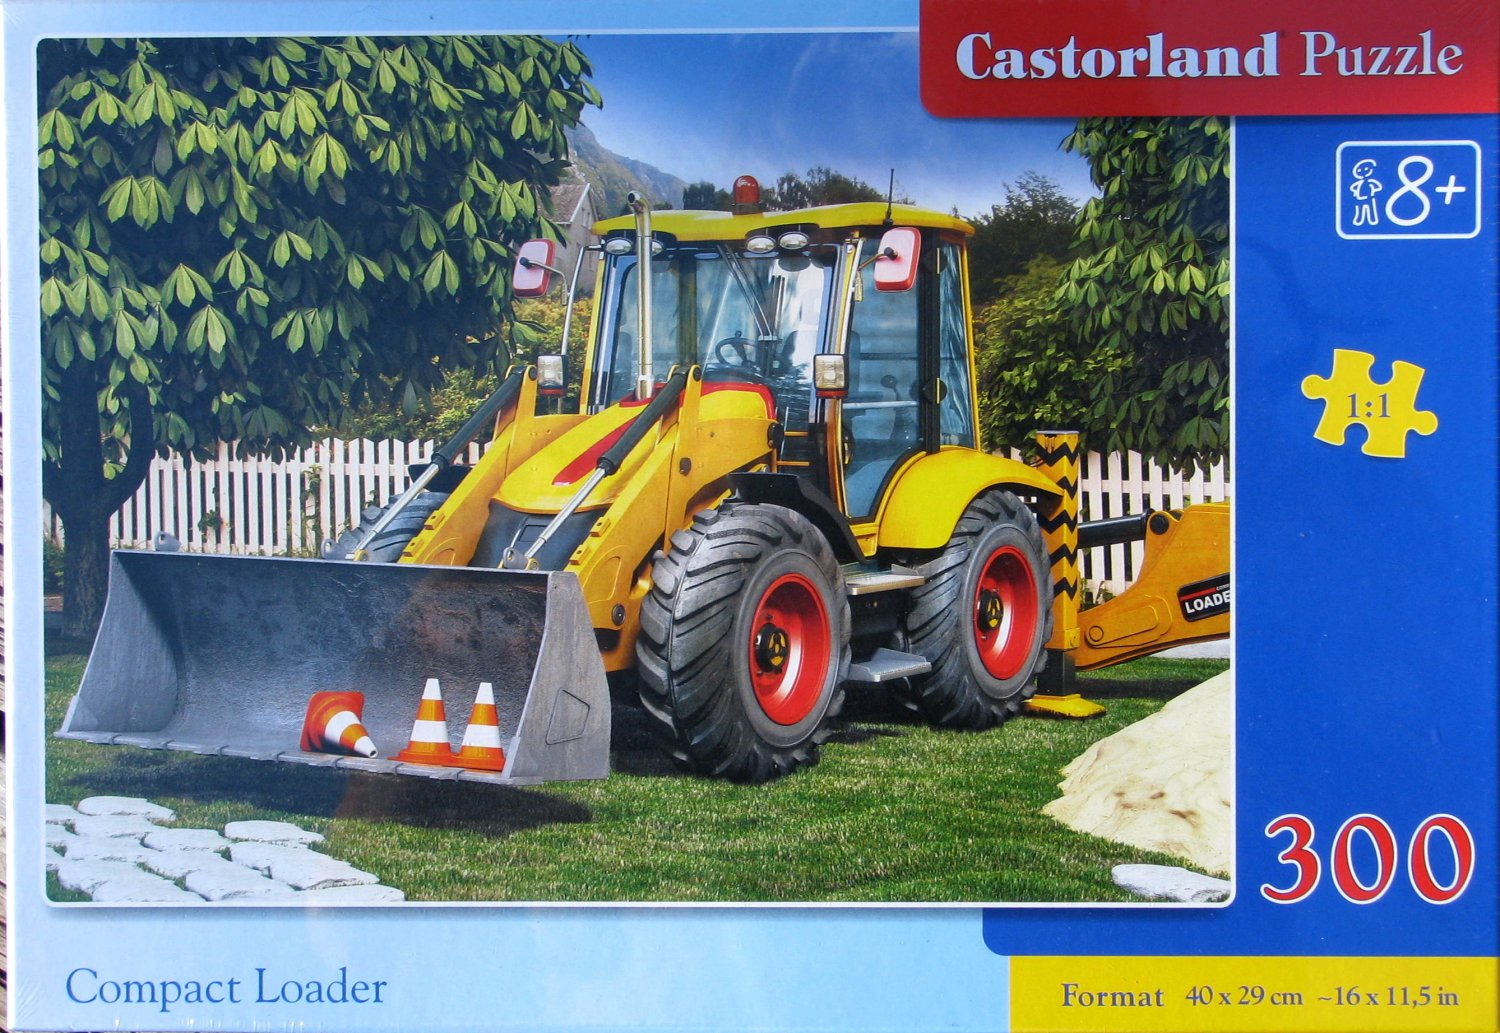 Castorland COMPACT LOADER 300 pc Jigsaw Puzzle Construction